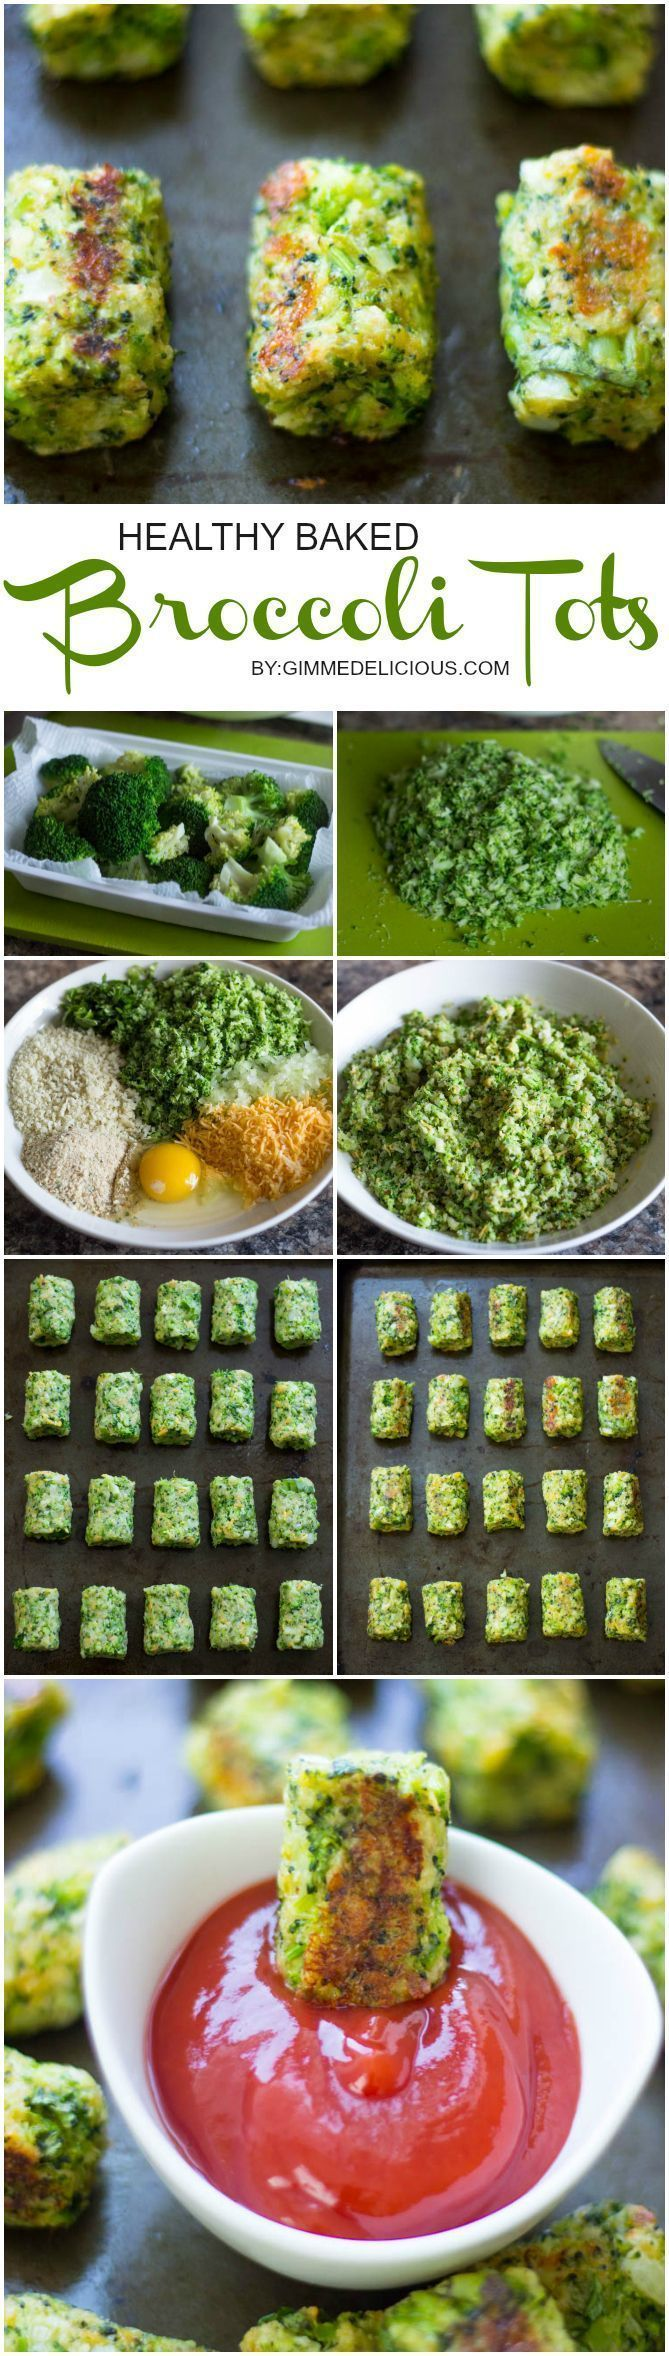 Healthy Baked Broccoli Tots. Swap out the breadcrumbs for crushed pork rind crumbs for a keto alternative.